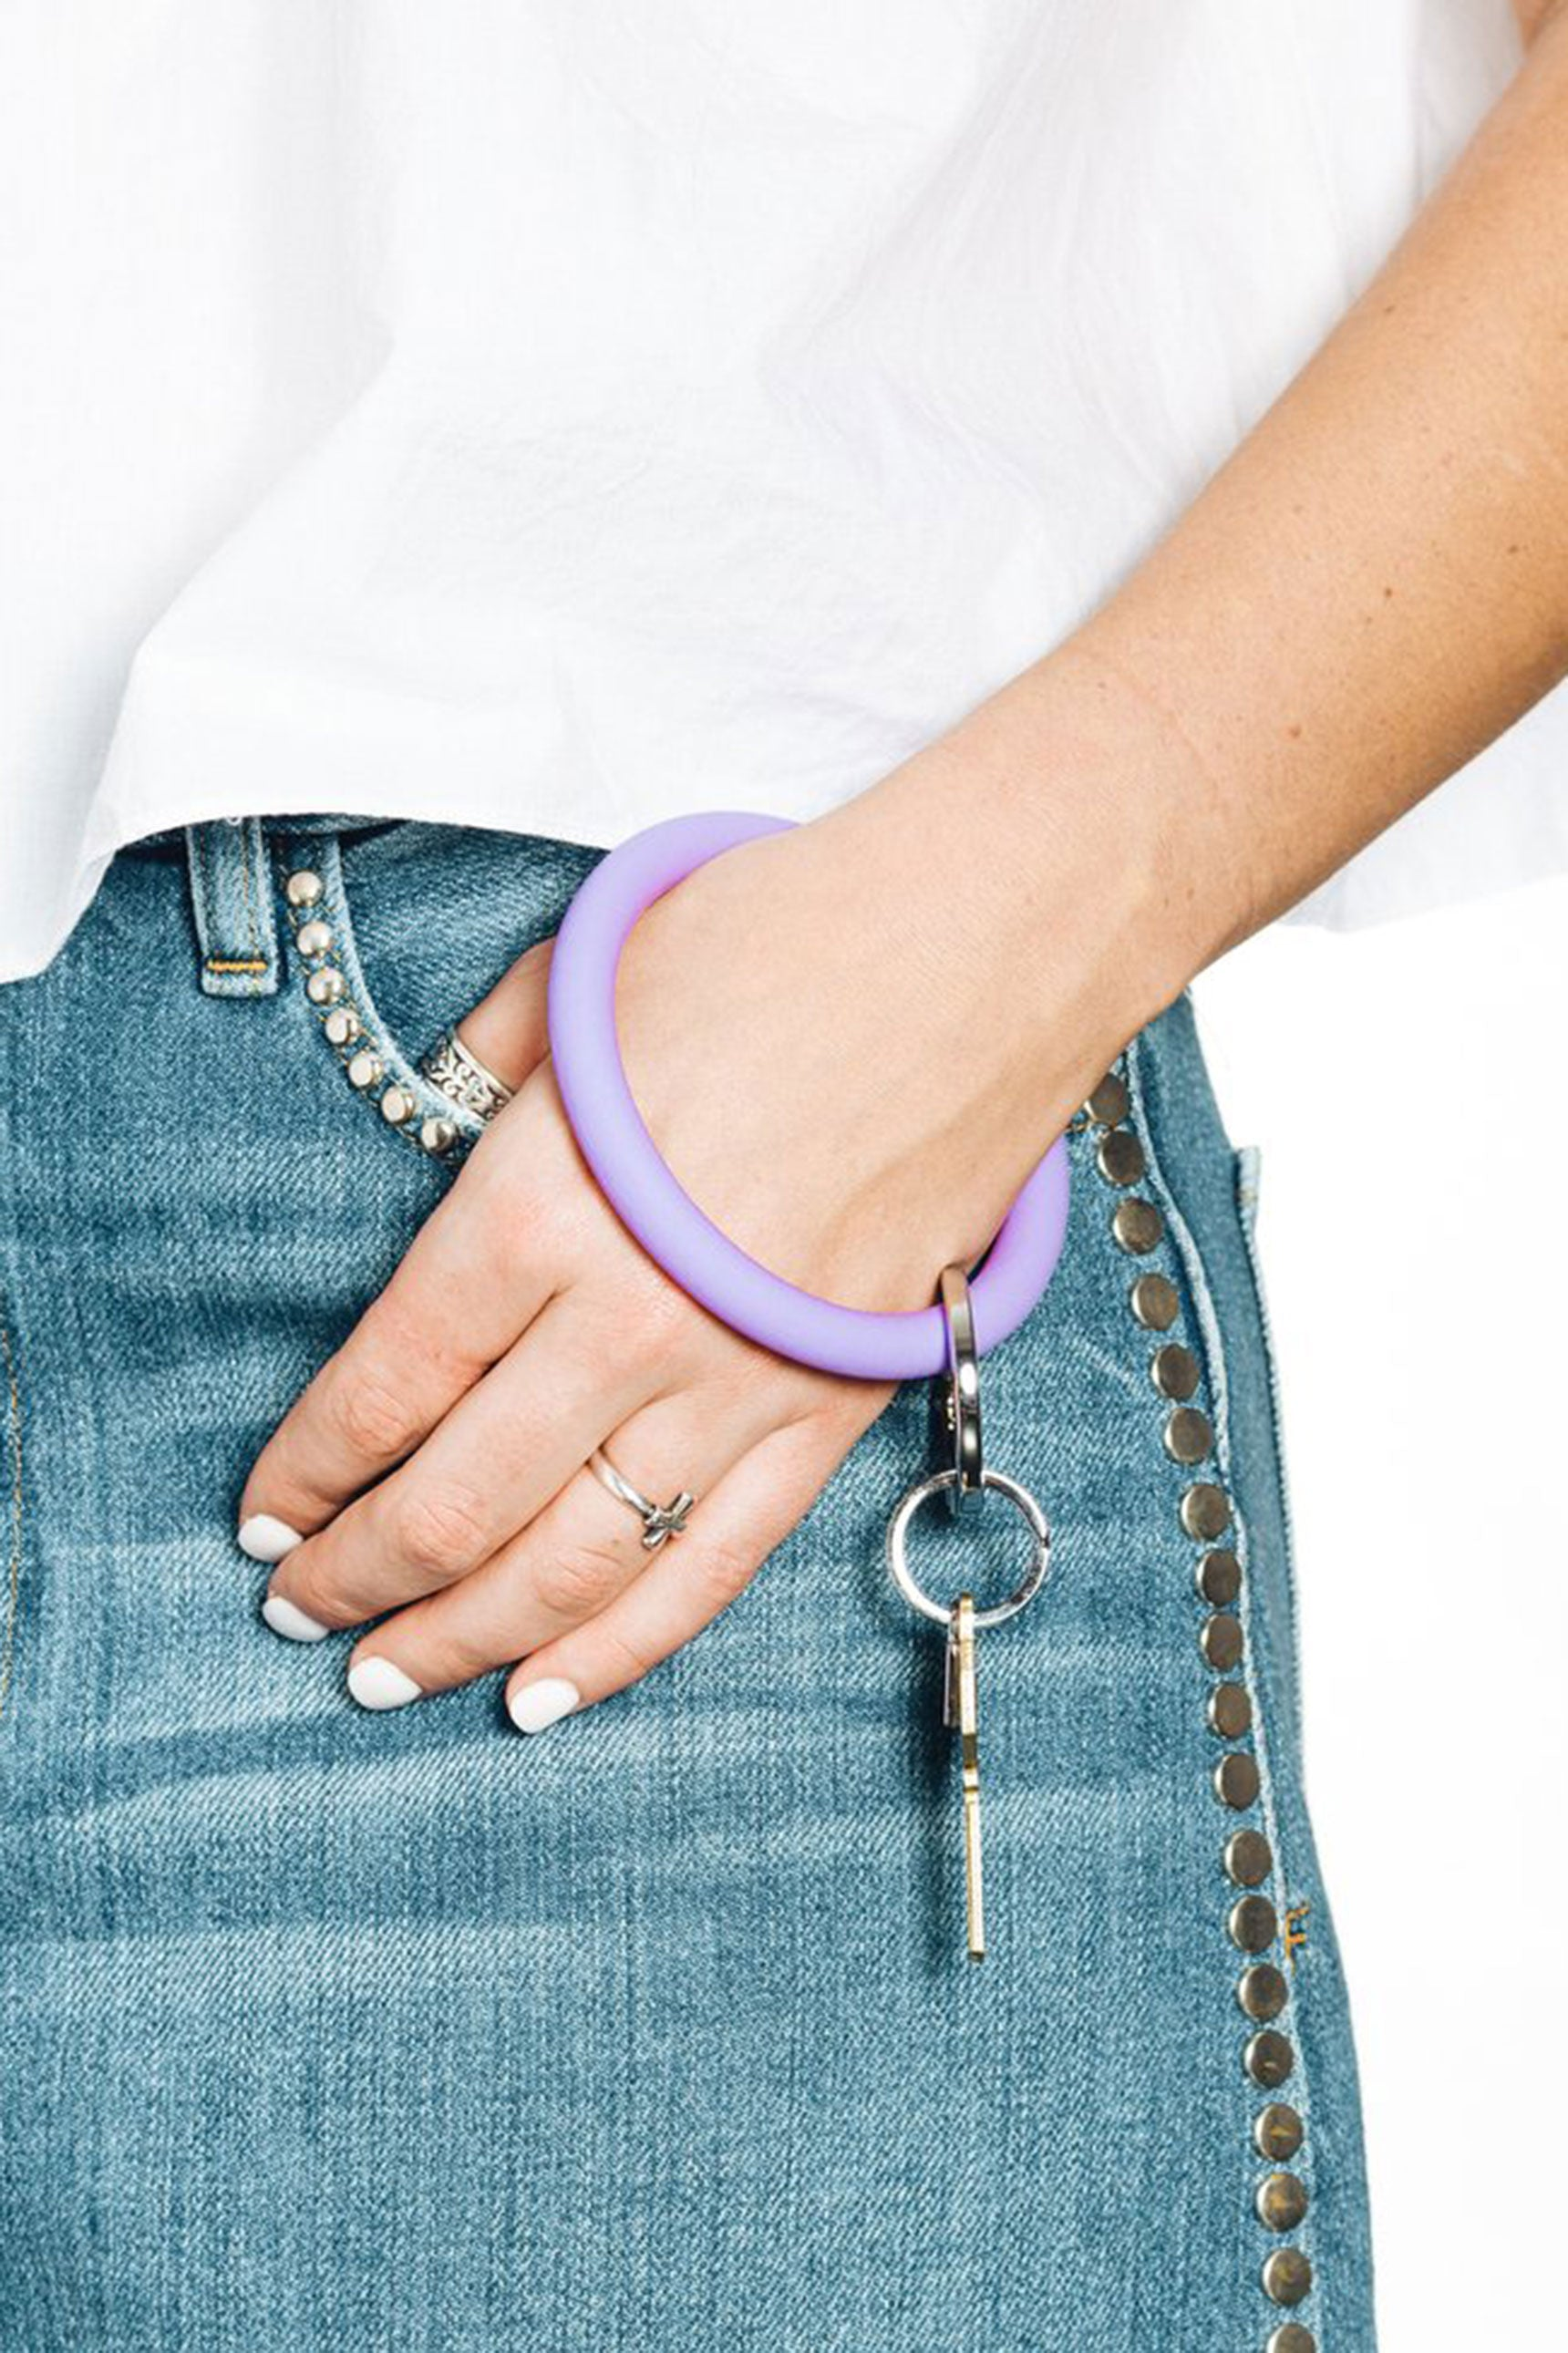 3f0d323774 O-Venture Silicone Key Ring in Lavender, in the cabana